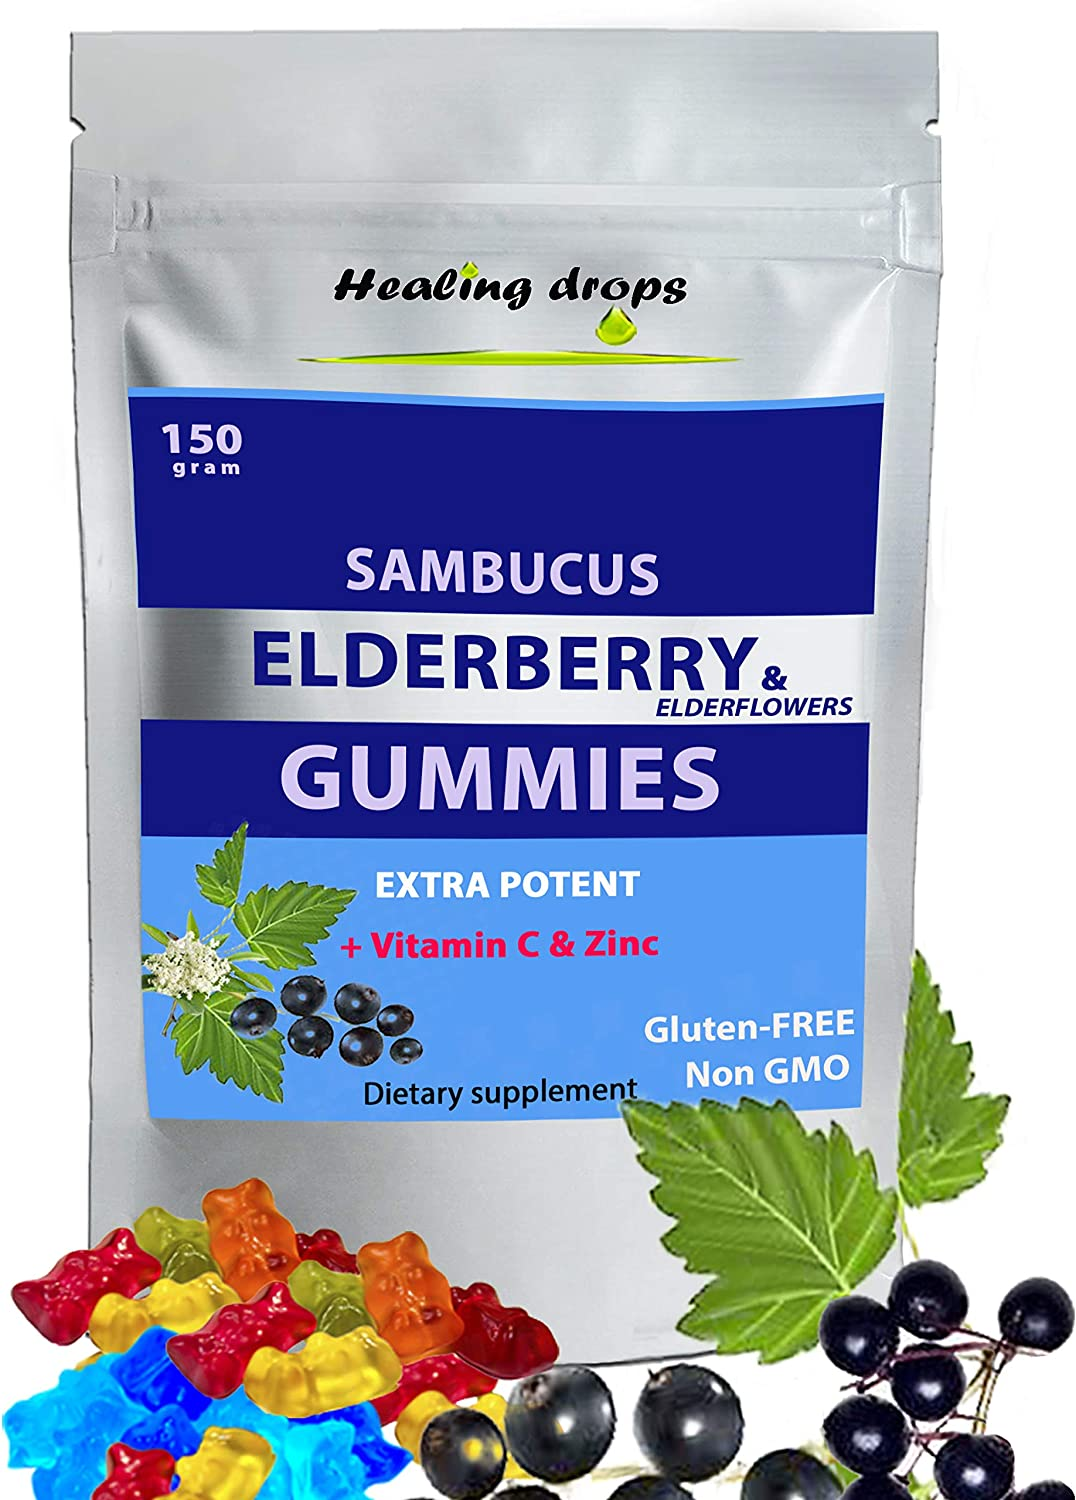 Sambucus Elderberry & Elderflower Gummies Extra Potent Organic Herbal Supplement Rich in Vitamin C and Zinc Gluten Free Non GMO Perfectly Formulated Natural Black Elderberries & Elderflowers